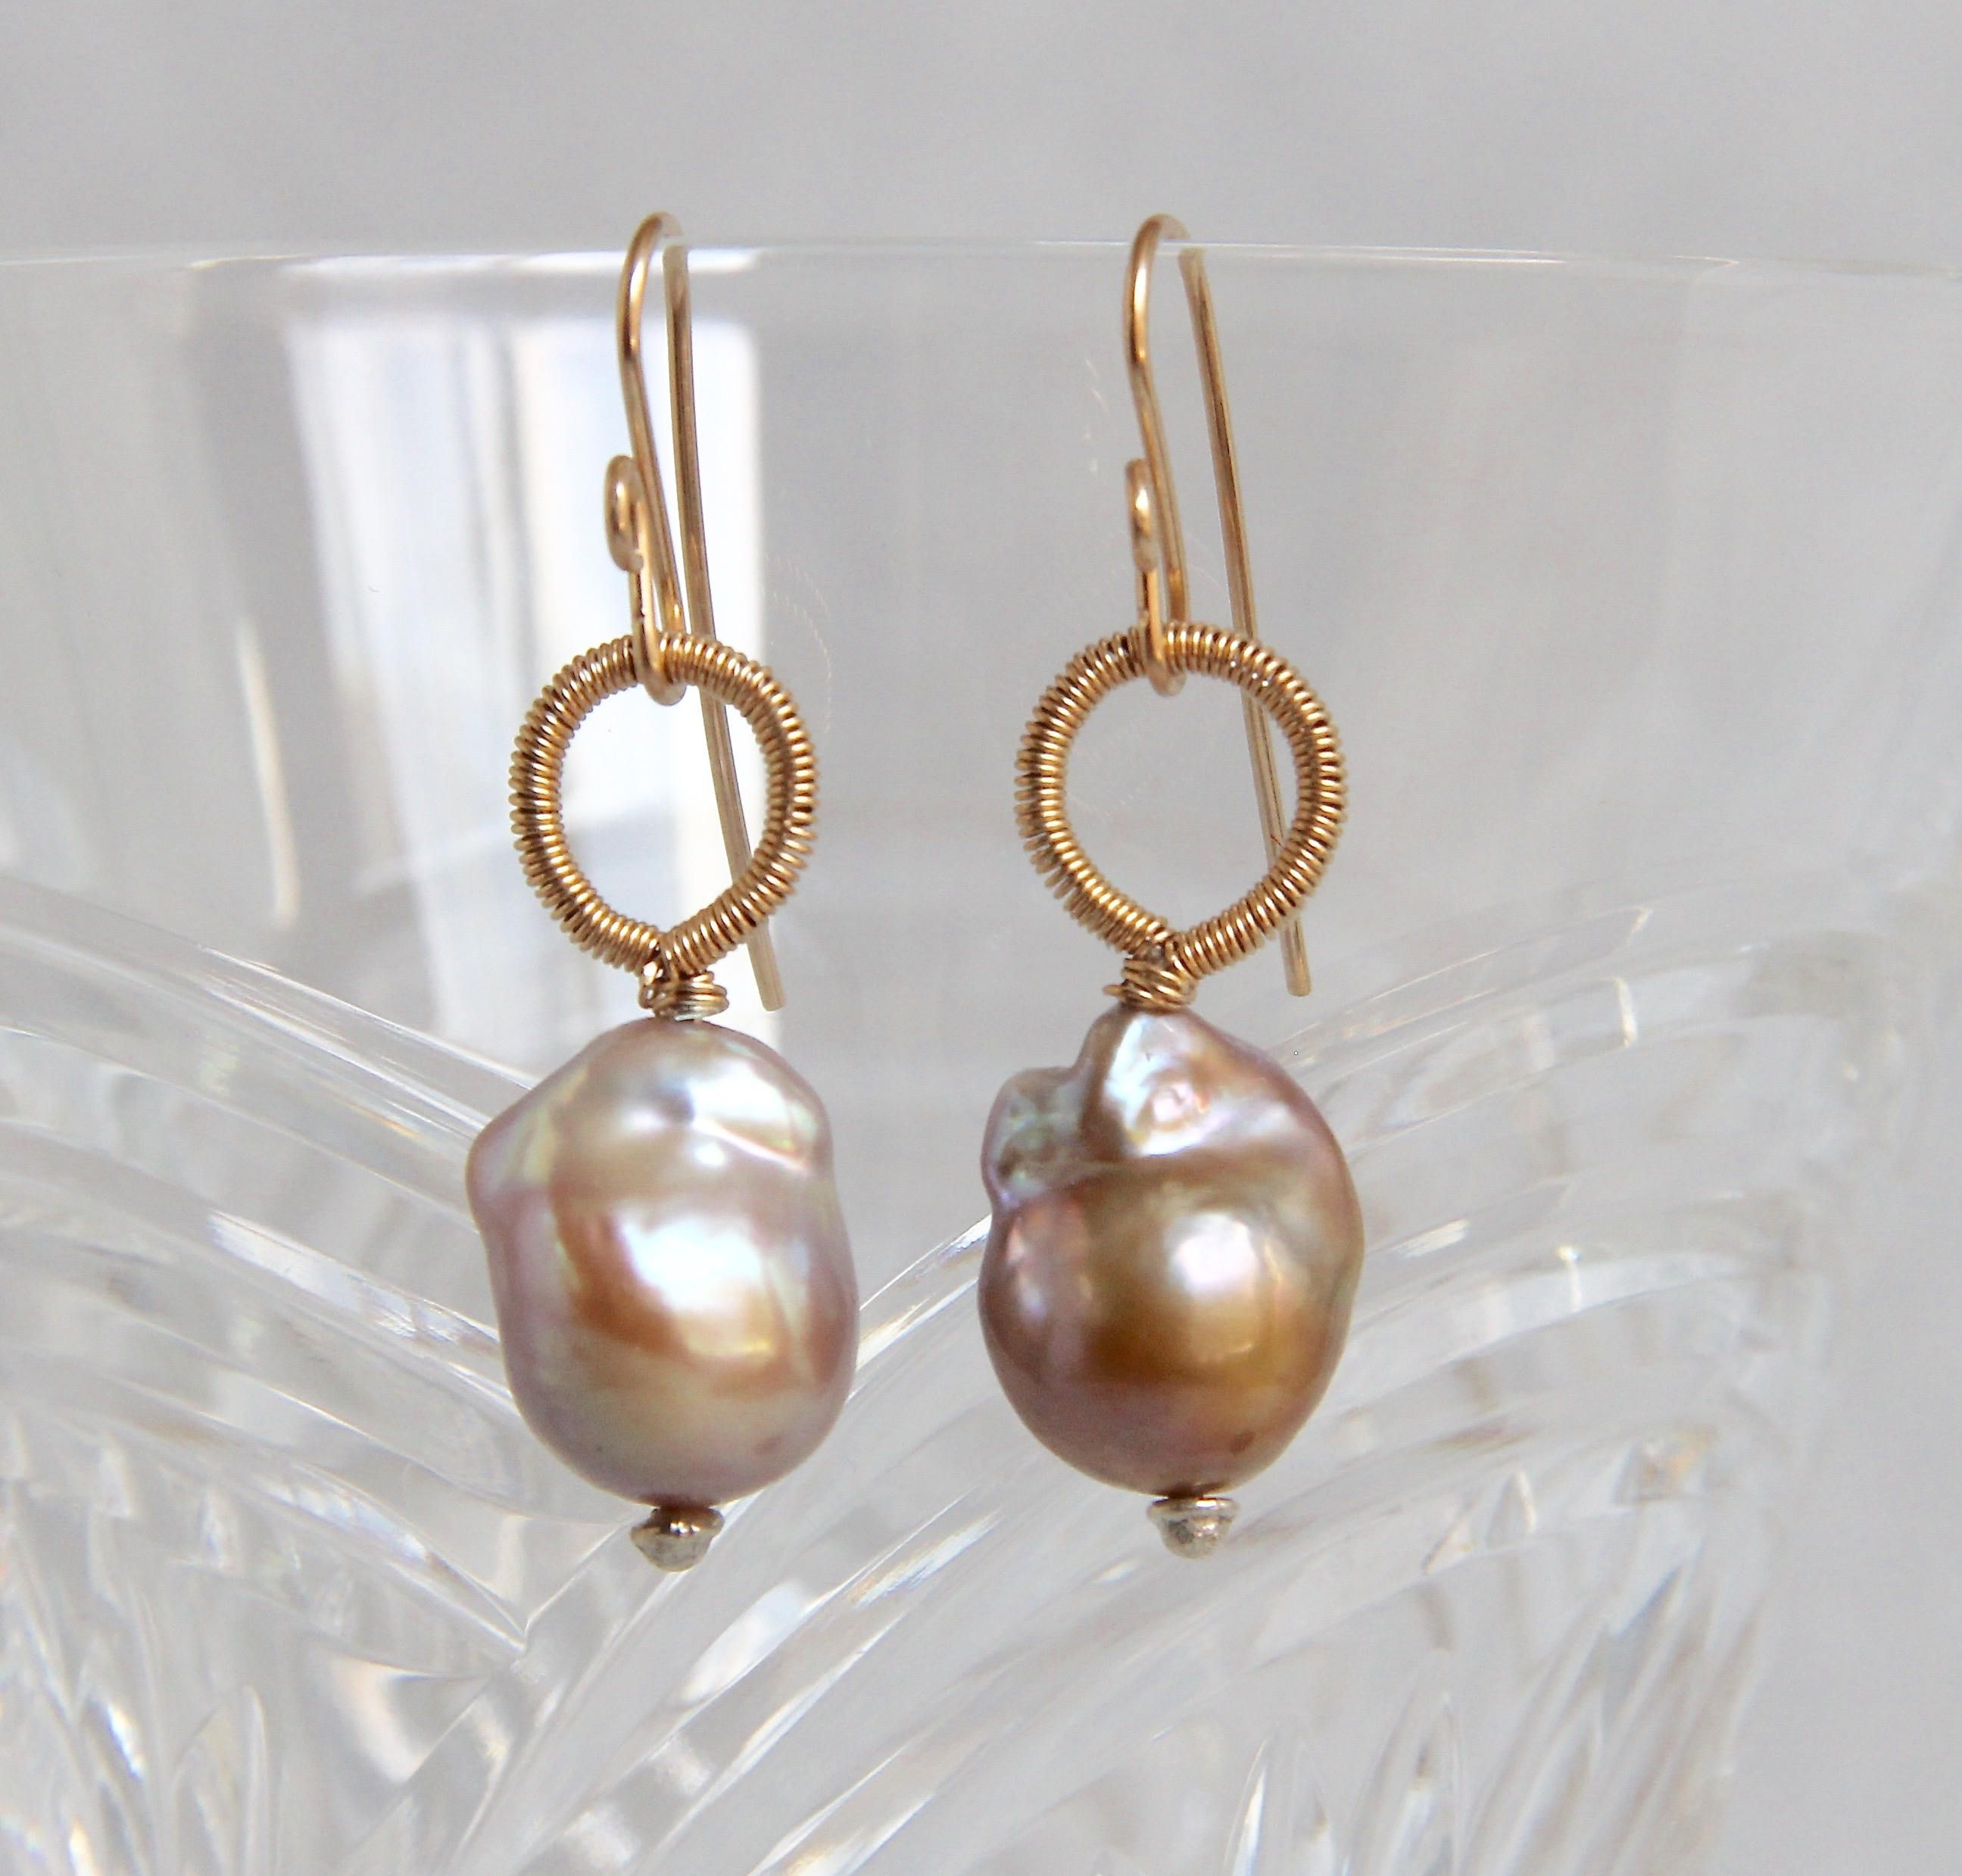 5cd5c306e Baroque Pearl Dangle Drop Earrings, Gold Filled Wire Wrapped, Handmade  Gemstone Beaded Jewelry, Elegant Minimalist, Cream Gold Mineral, ...